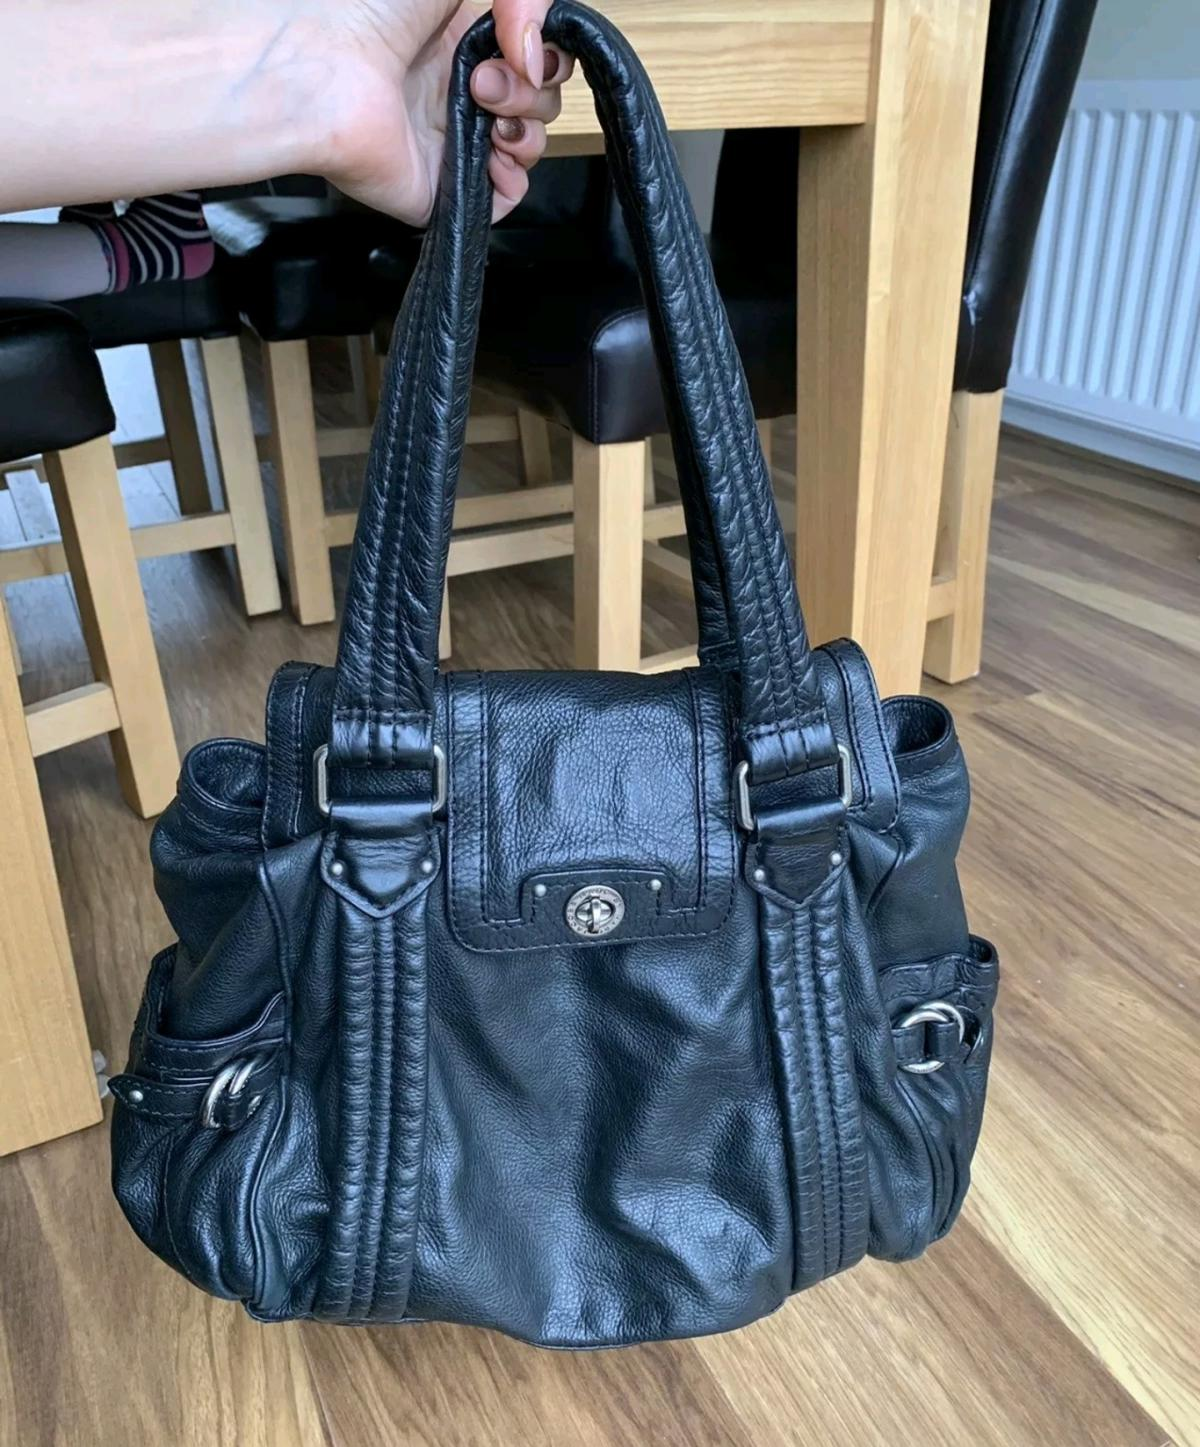 569ac6cf3aff7 genuine marc Jacobs handbag collection in Knowsley for £50.00 for ...